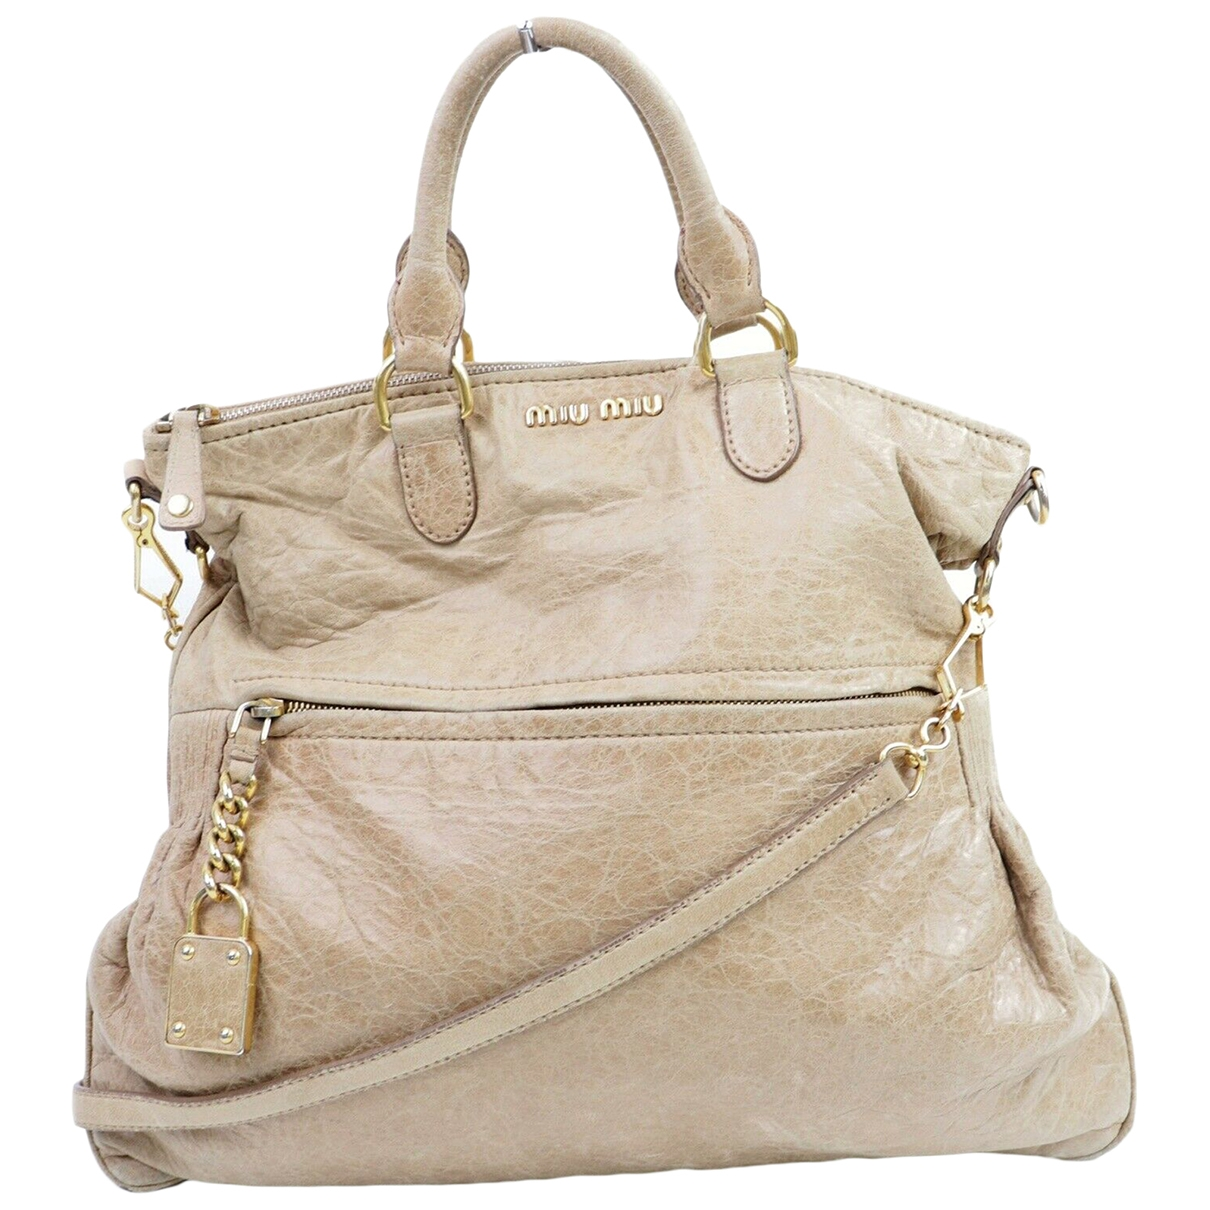 Miu Miu \N Beige Leather handbag for Women \N